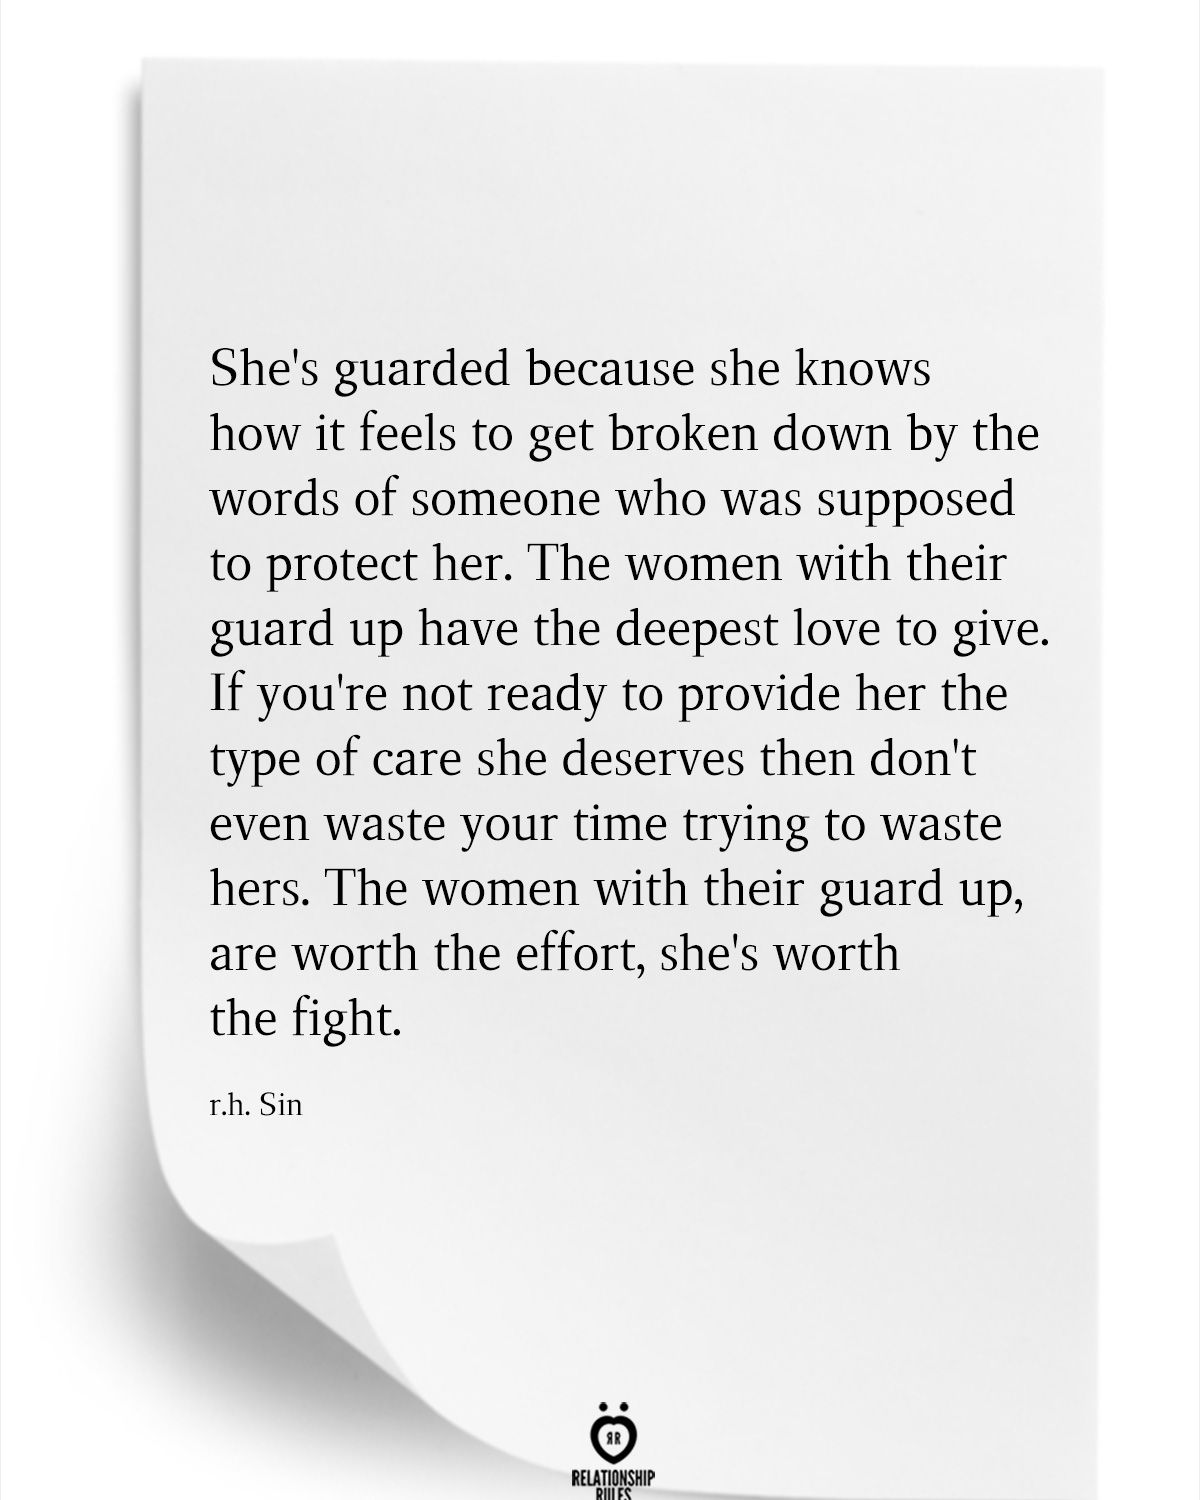 She's Guarded Because She Knows How It Feels To Get Broken Down By The Words